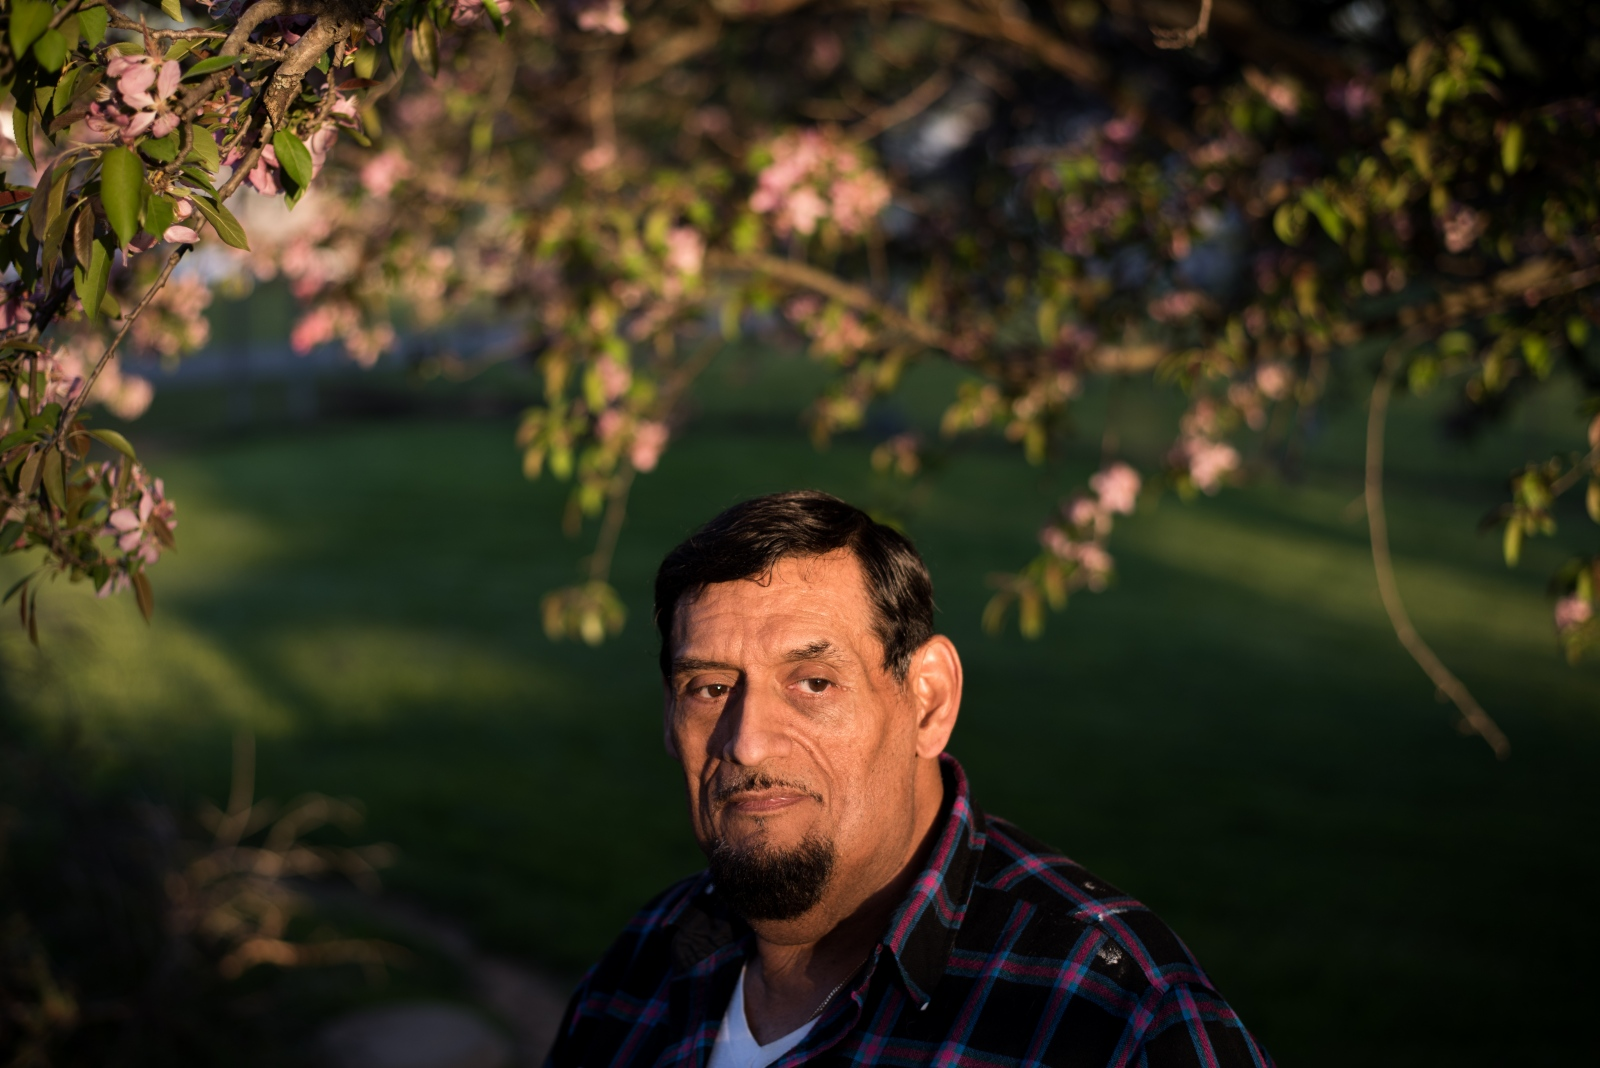 Roland Garcia poses for a portrait in his backyard in Coolville, Ohio in April 2015. In 2006, Garcia and his partner, Tom, started looking to move from Florida to Southeast Ohio to be closer to Garcia's mom who was in poor health. They found a 100-year-old house in Coolville, fell in love with it immediately, and left before even looking around town. In the process of moving, Garcia's mother passed away. Garcia and Tom made a decision to stay in Coolville. Garcia says that his co-workers at Coolville's Arcadia Nursing Home became a second family to him. They were there to console and support him when Garcia was diagnosed with cancer and when Tom, his partner of 35 years, died of a heart attack this past November. Garcia says that despite the impression some people have that residents of Southeast Ohio are all close-minded, he has never received any ill will for his heritage or sexual orientation. He says he has found compassion here.